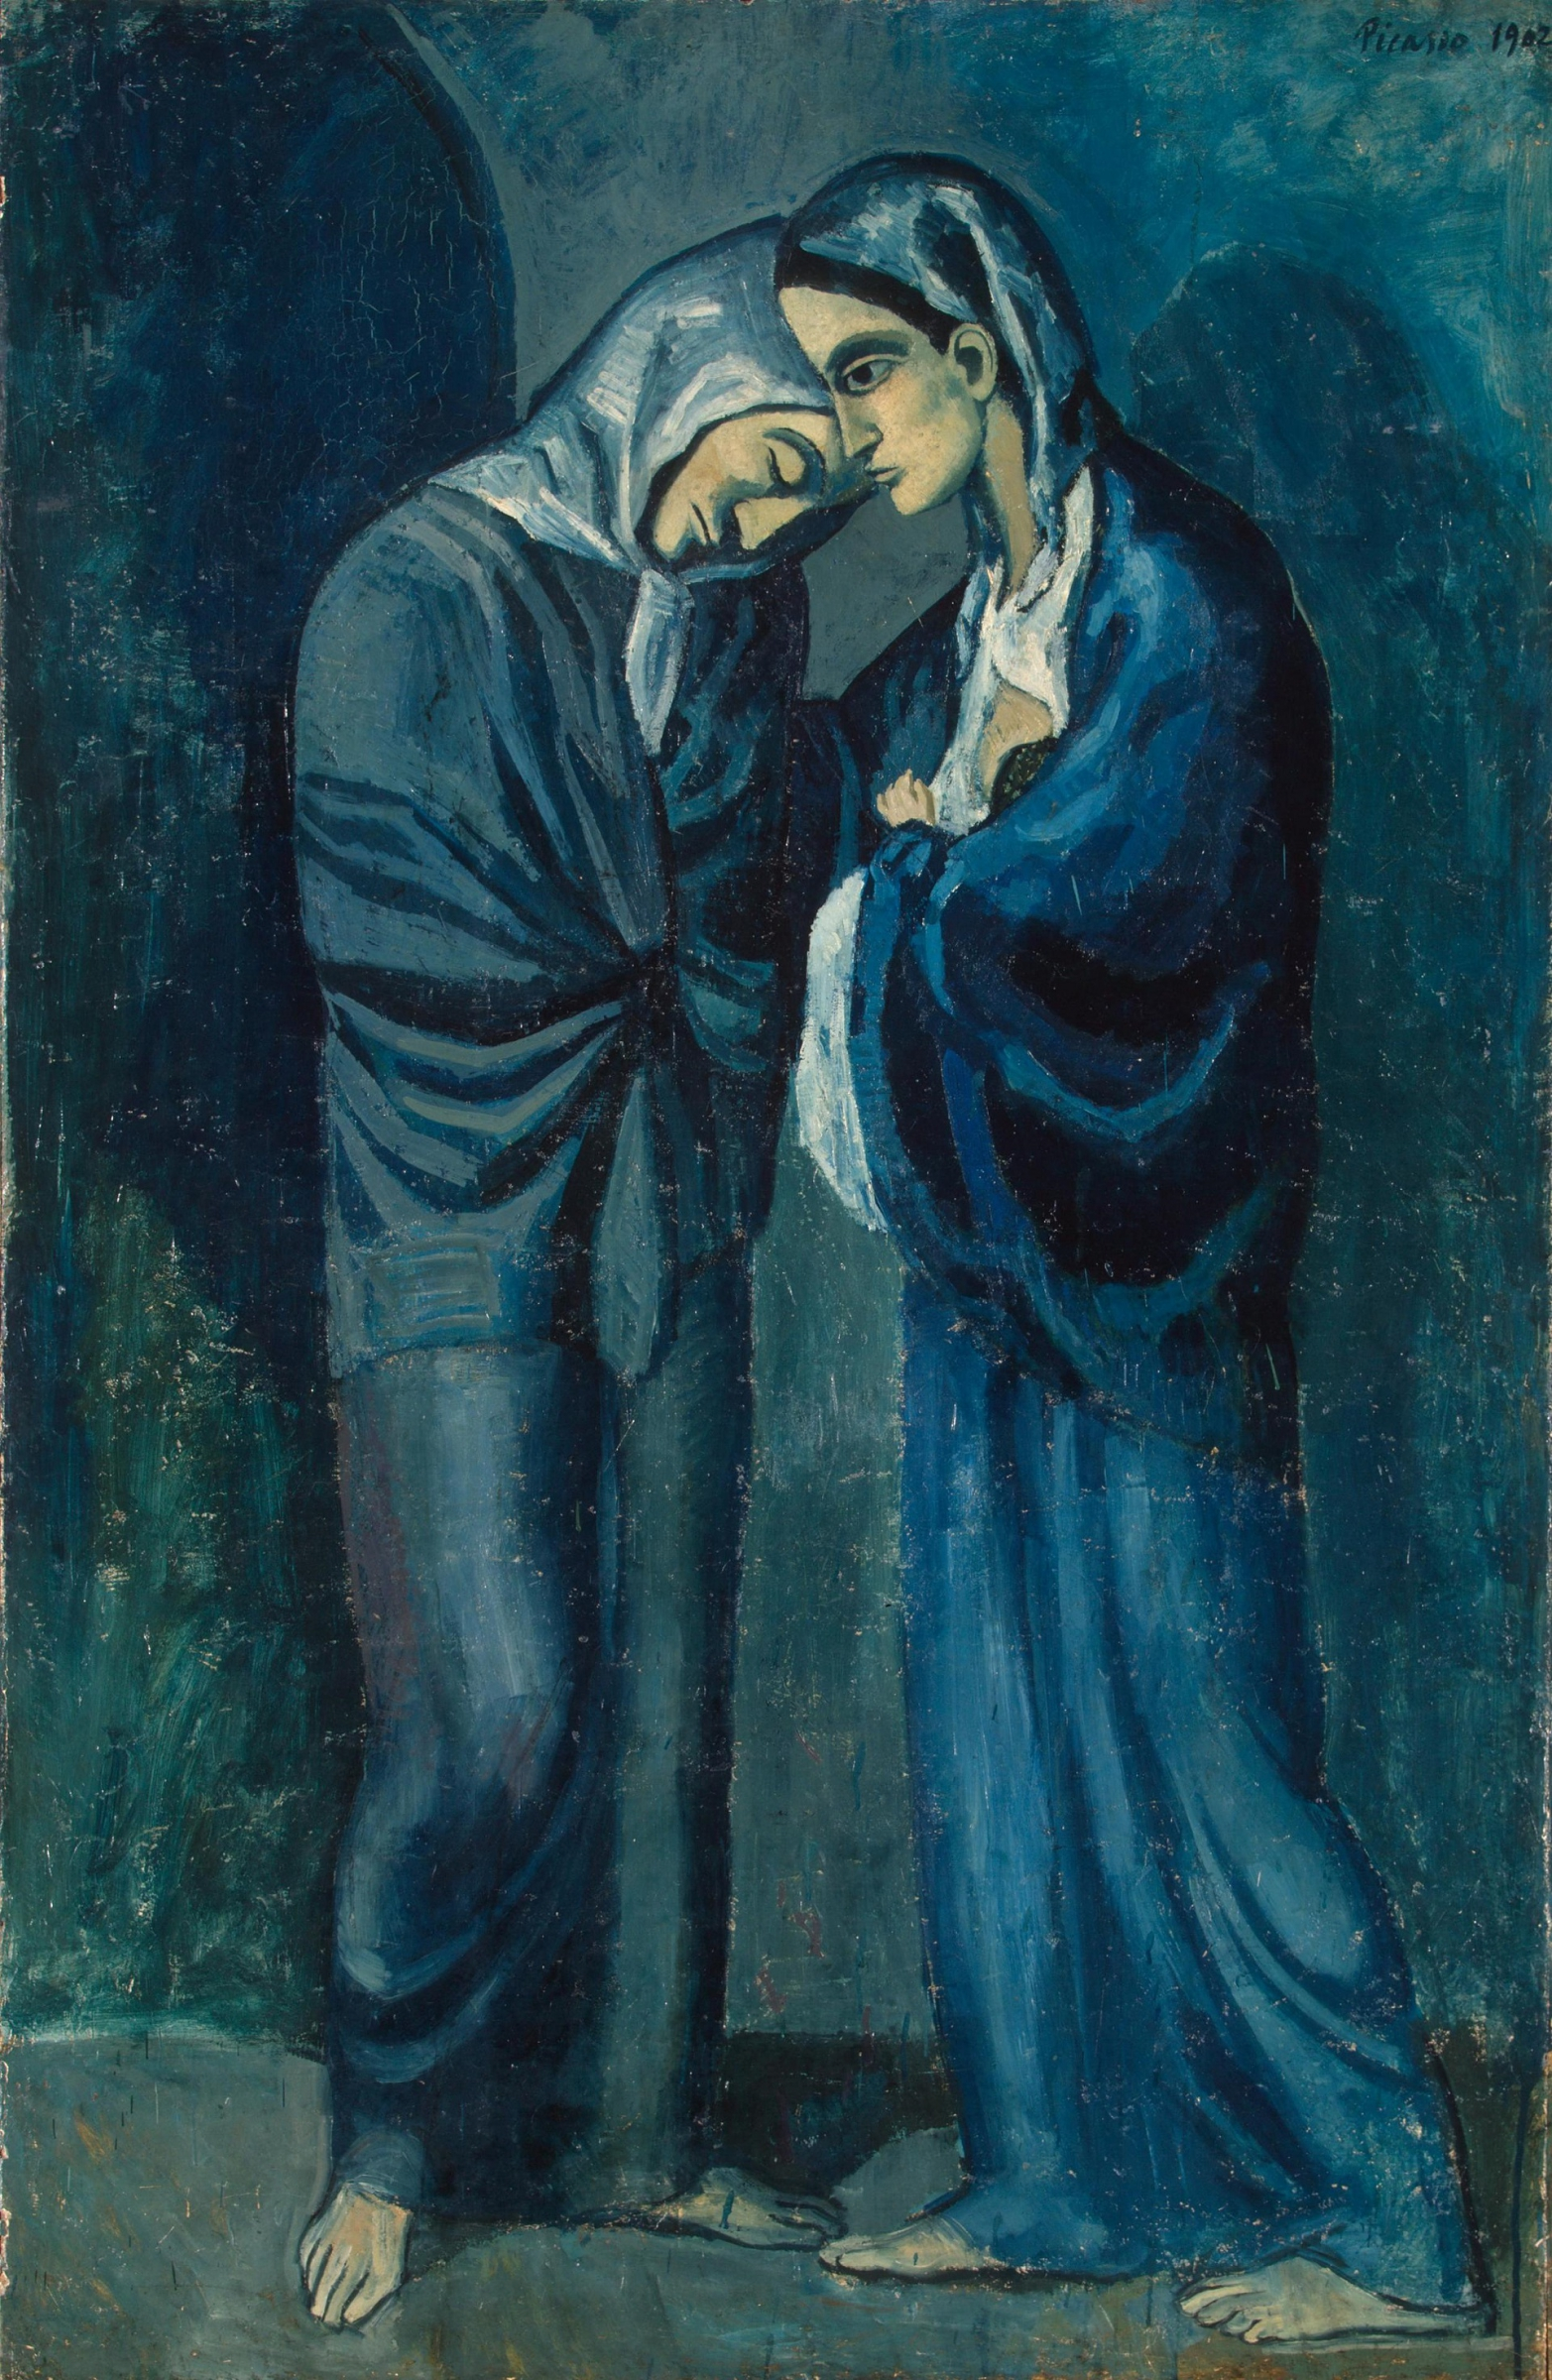 picasso-1902-the-visit-hermitage-st-petersburg